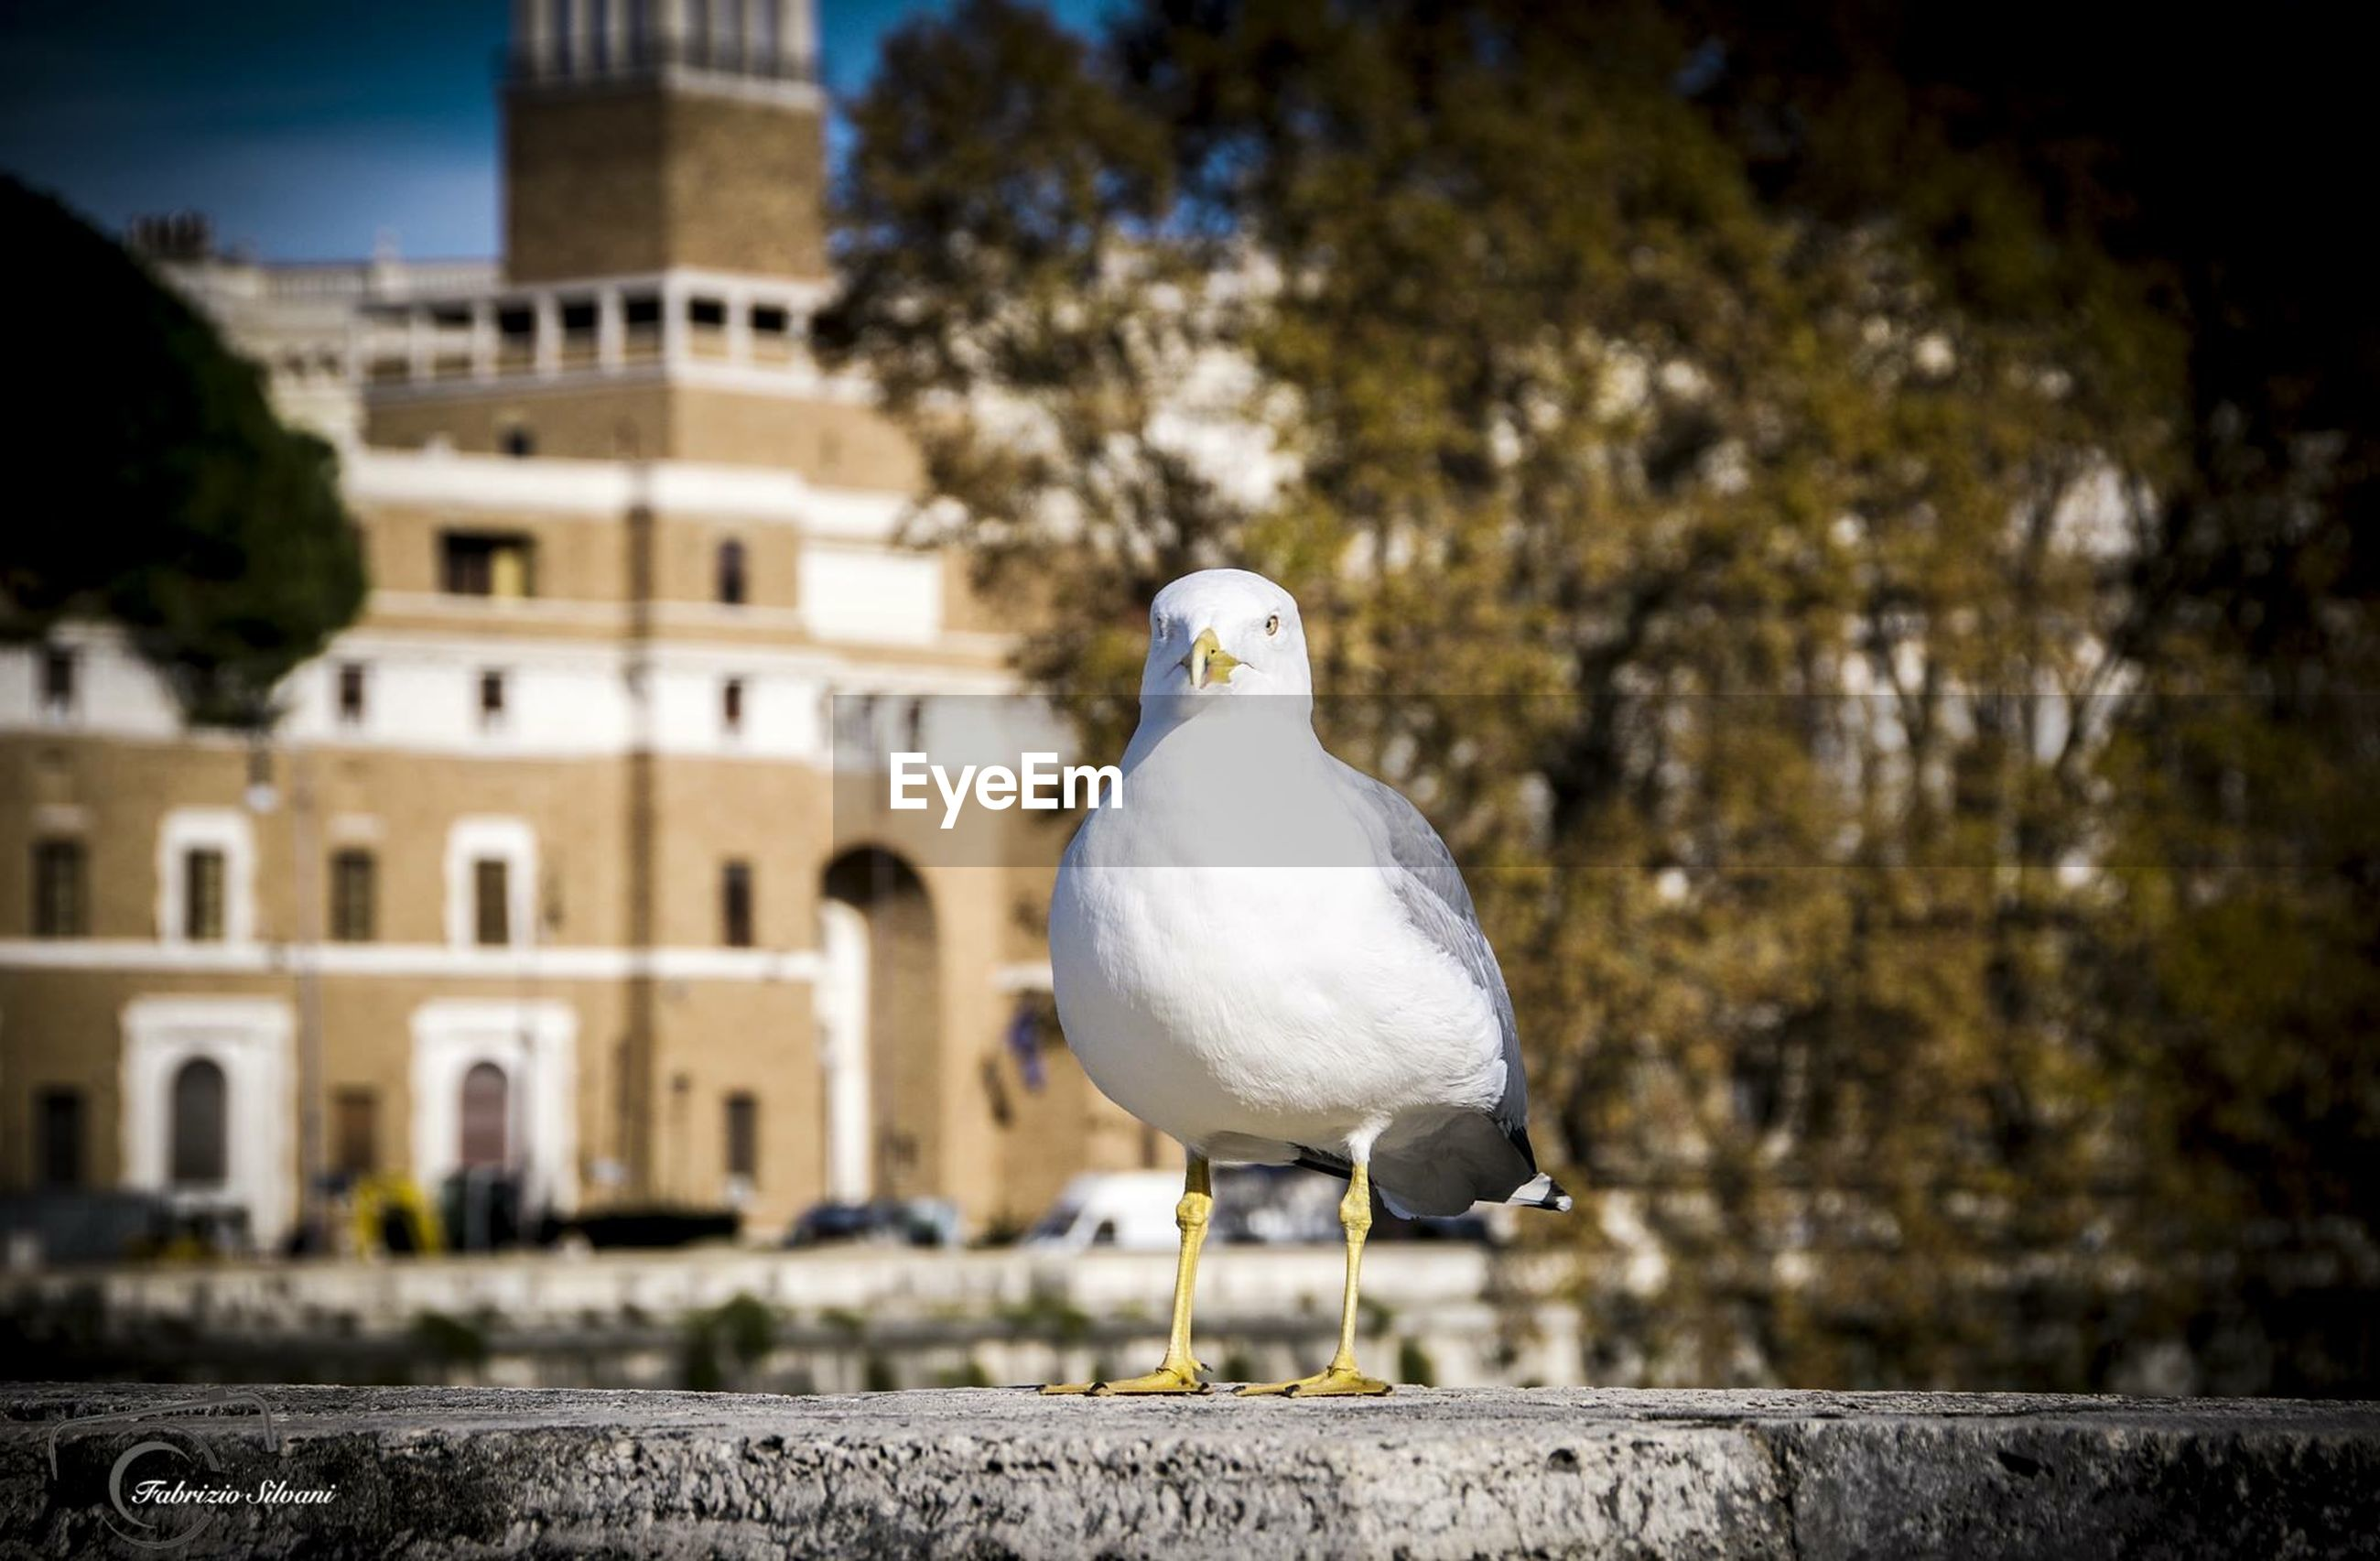 bird, building exterior, architecture, built structure, animal themes, one animal, animals in the wild, pigeon, wildlife, perching, focus on foreground, tree, seagull, city, day, outdoors, statue, sculpture, no people, full length